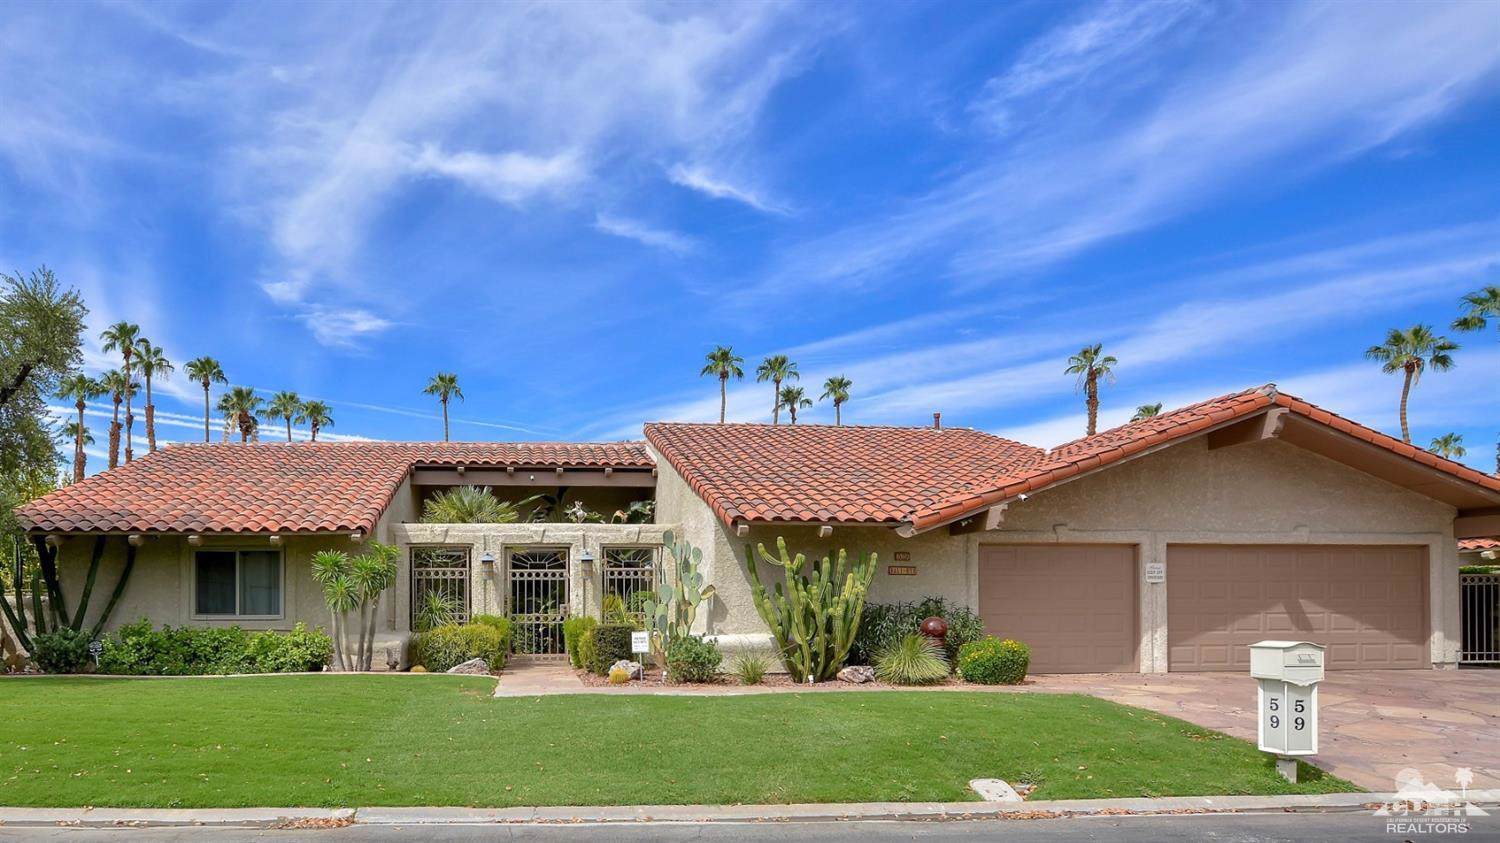 59 Sierra Madre Way, Rancho Mirage